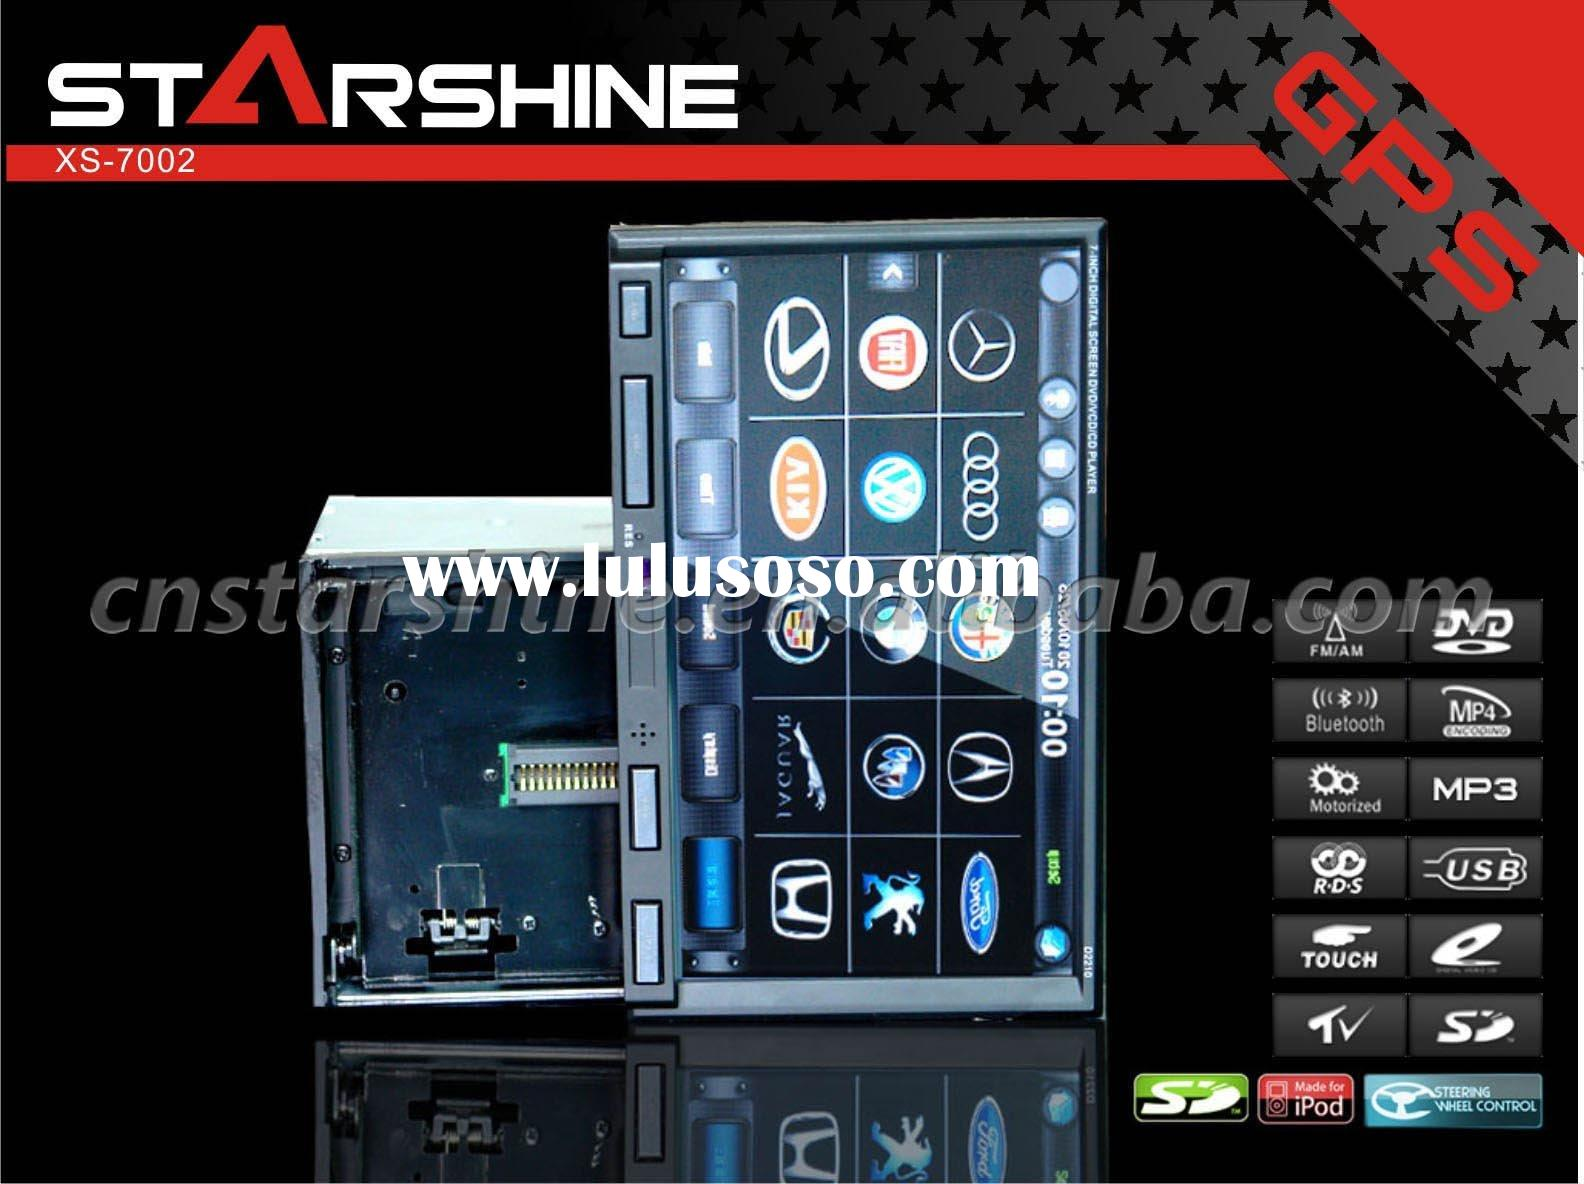 XS-7002: 7 Inch Car DVD GPS with detachable face panel